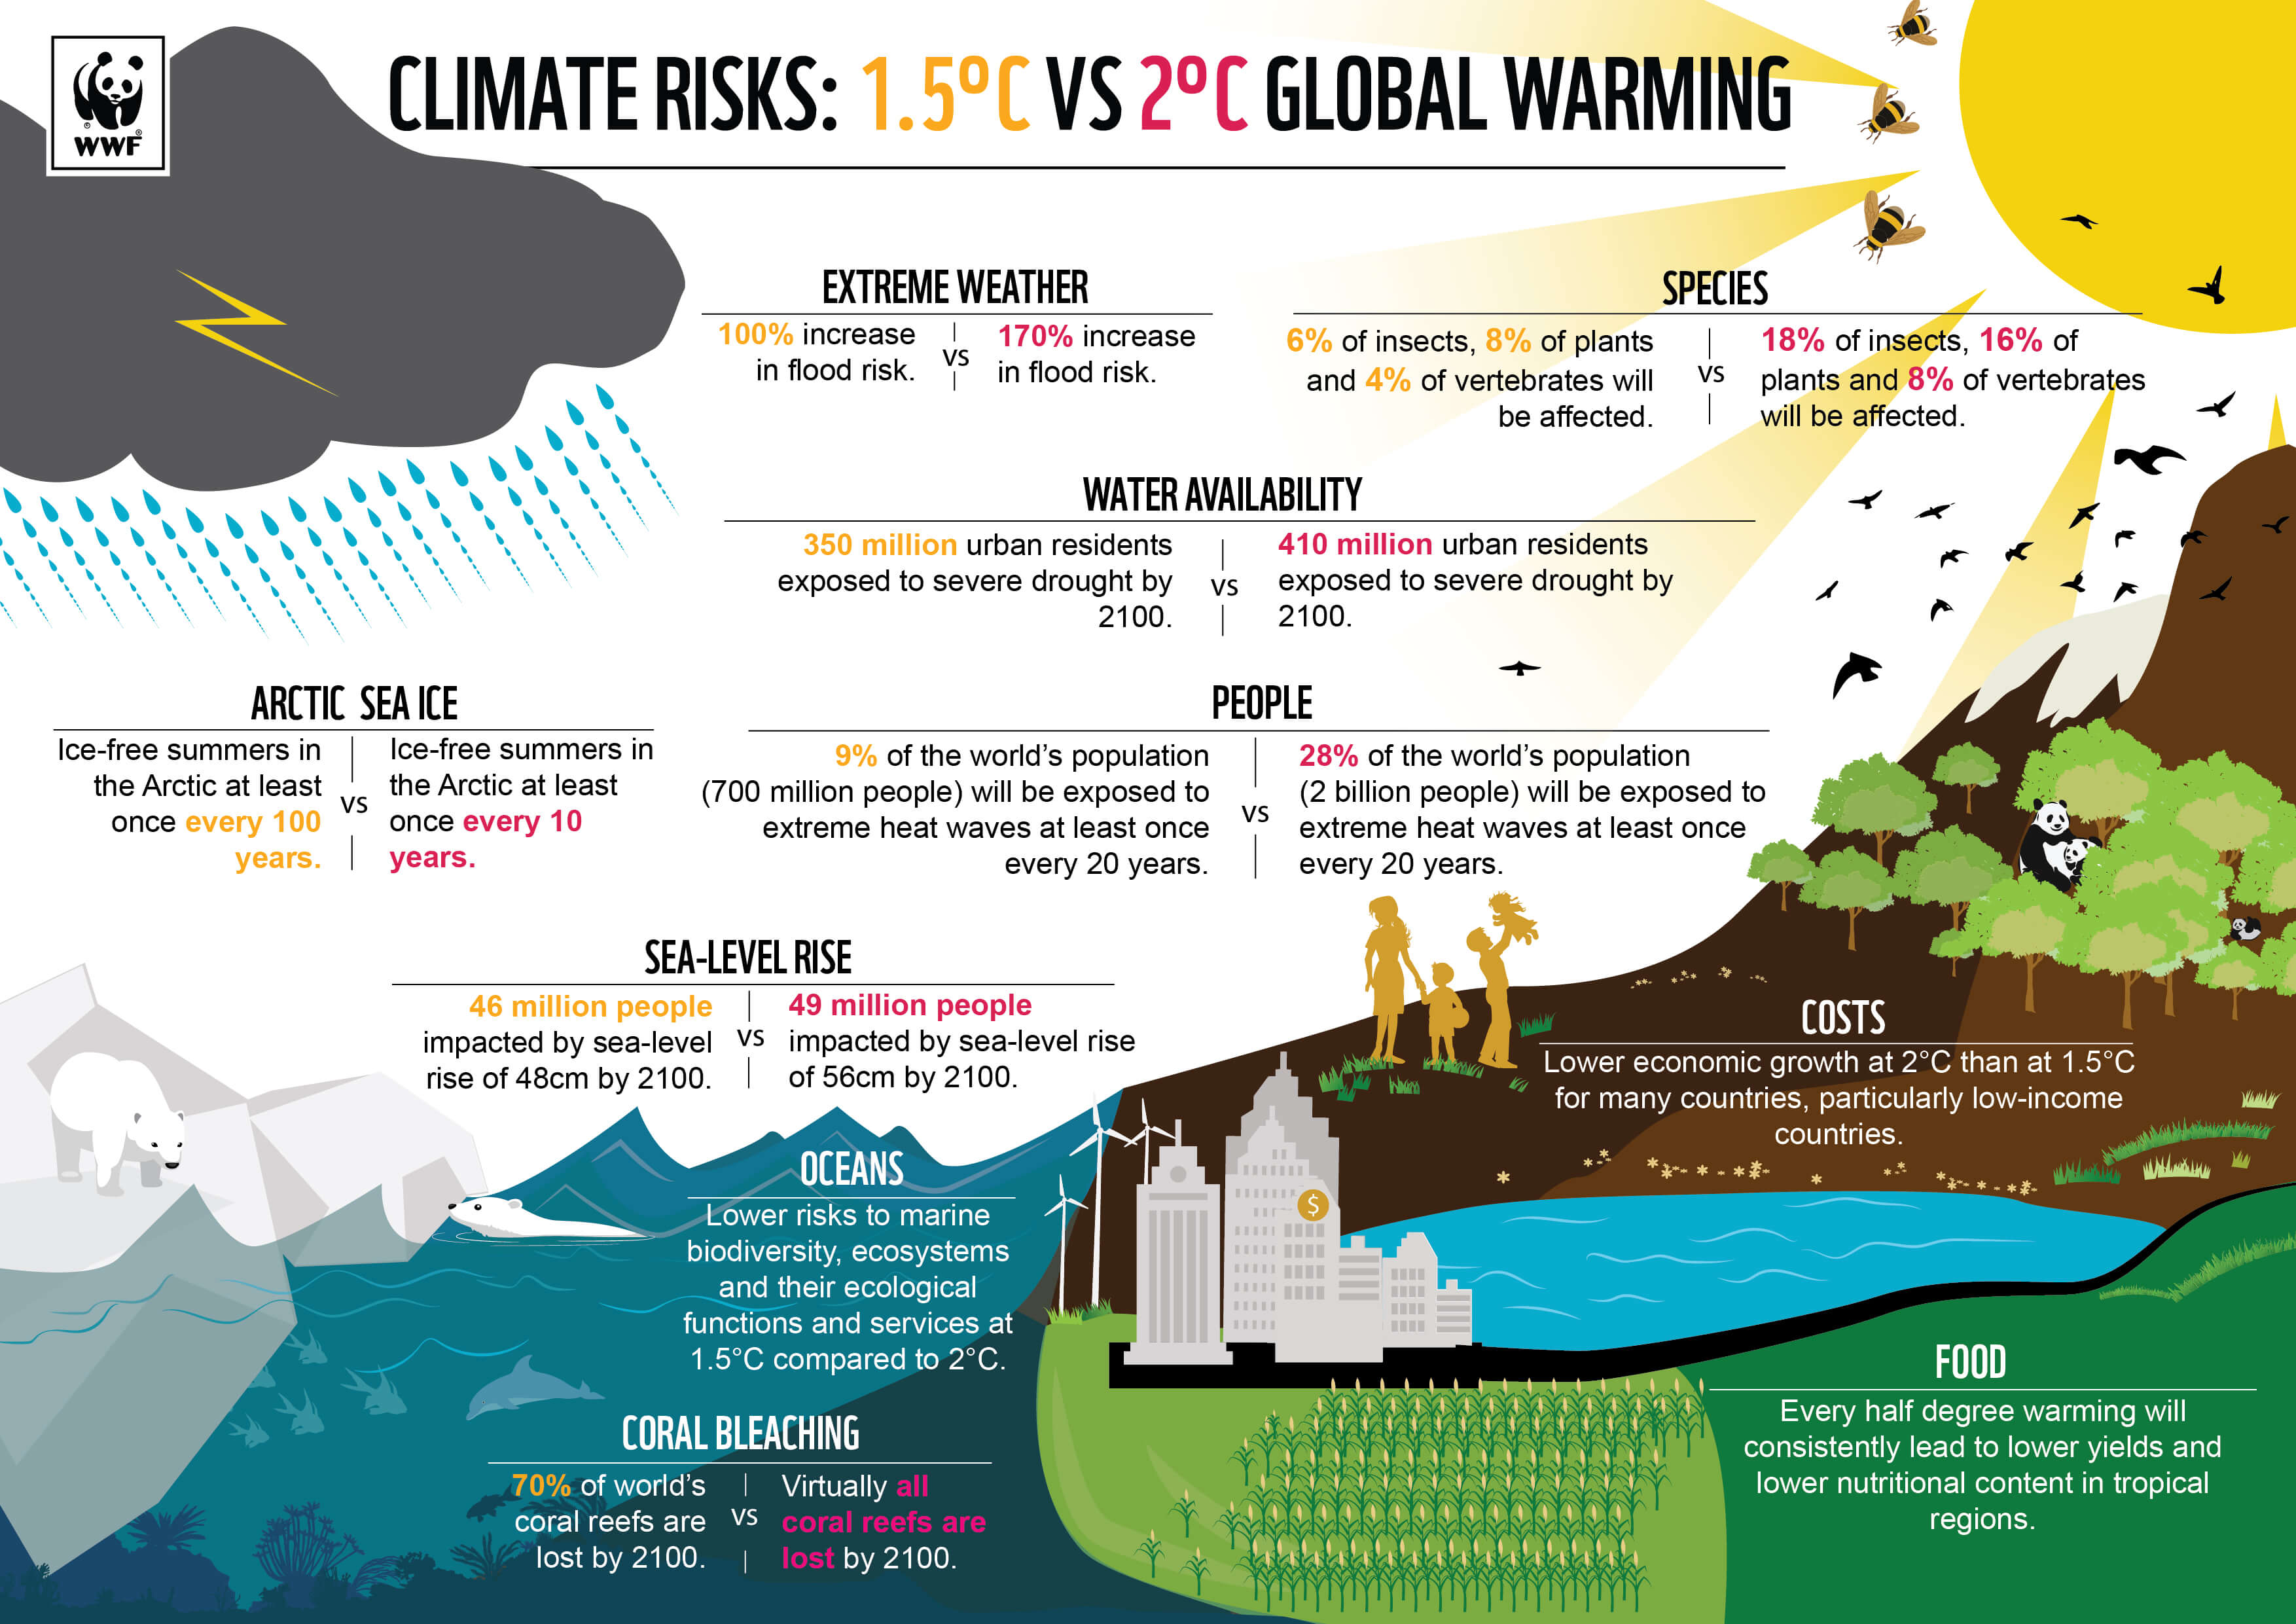 climate-risks-1.5-degree-vs-2-degree-global-warming-climate-change-facts-infographic